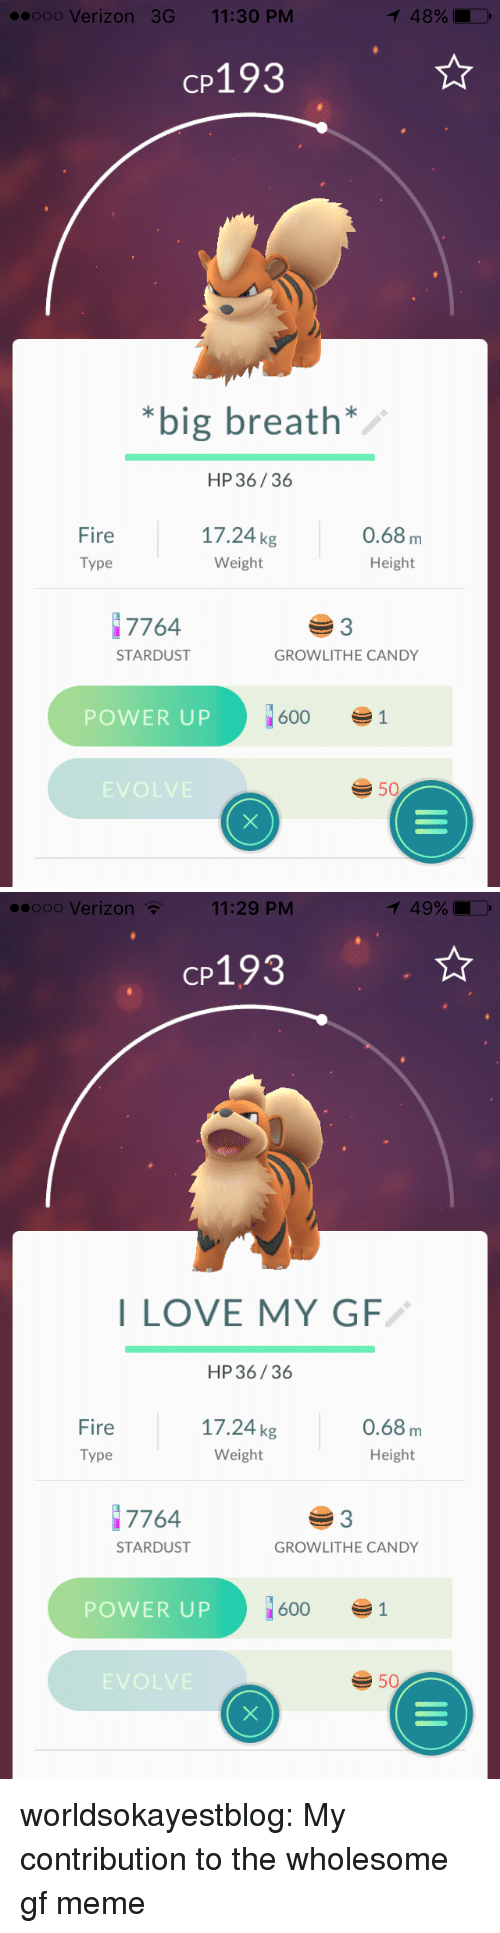 Power Up: ooo Verizon 3G 11:30 PM  CP193  *big breath*  HP36/36  Fire  Type  17.24kg  Weight  0.68m  Height  7764  3  STARDUST  GROWLITHE CANDY  POWER UP  6001  EVOLVE  50   eooo Verizon  11:29 PM  49%  CP193  I LOVE MY GF  HP36/36  Fire  Type  17.24kg  Weight  0.68m  Height  7764  3  STARDUST  GROWLITHE CANDY  POWER UP  6001  EVOLVE  50 worldsokayestblog:  My contribution to the wholesome gf meme